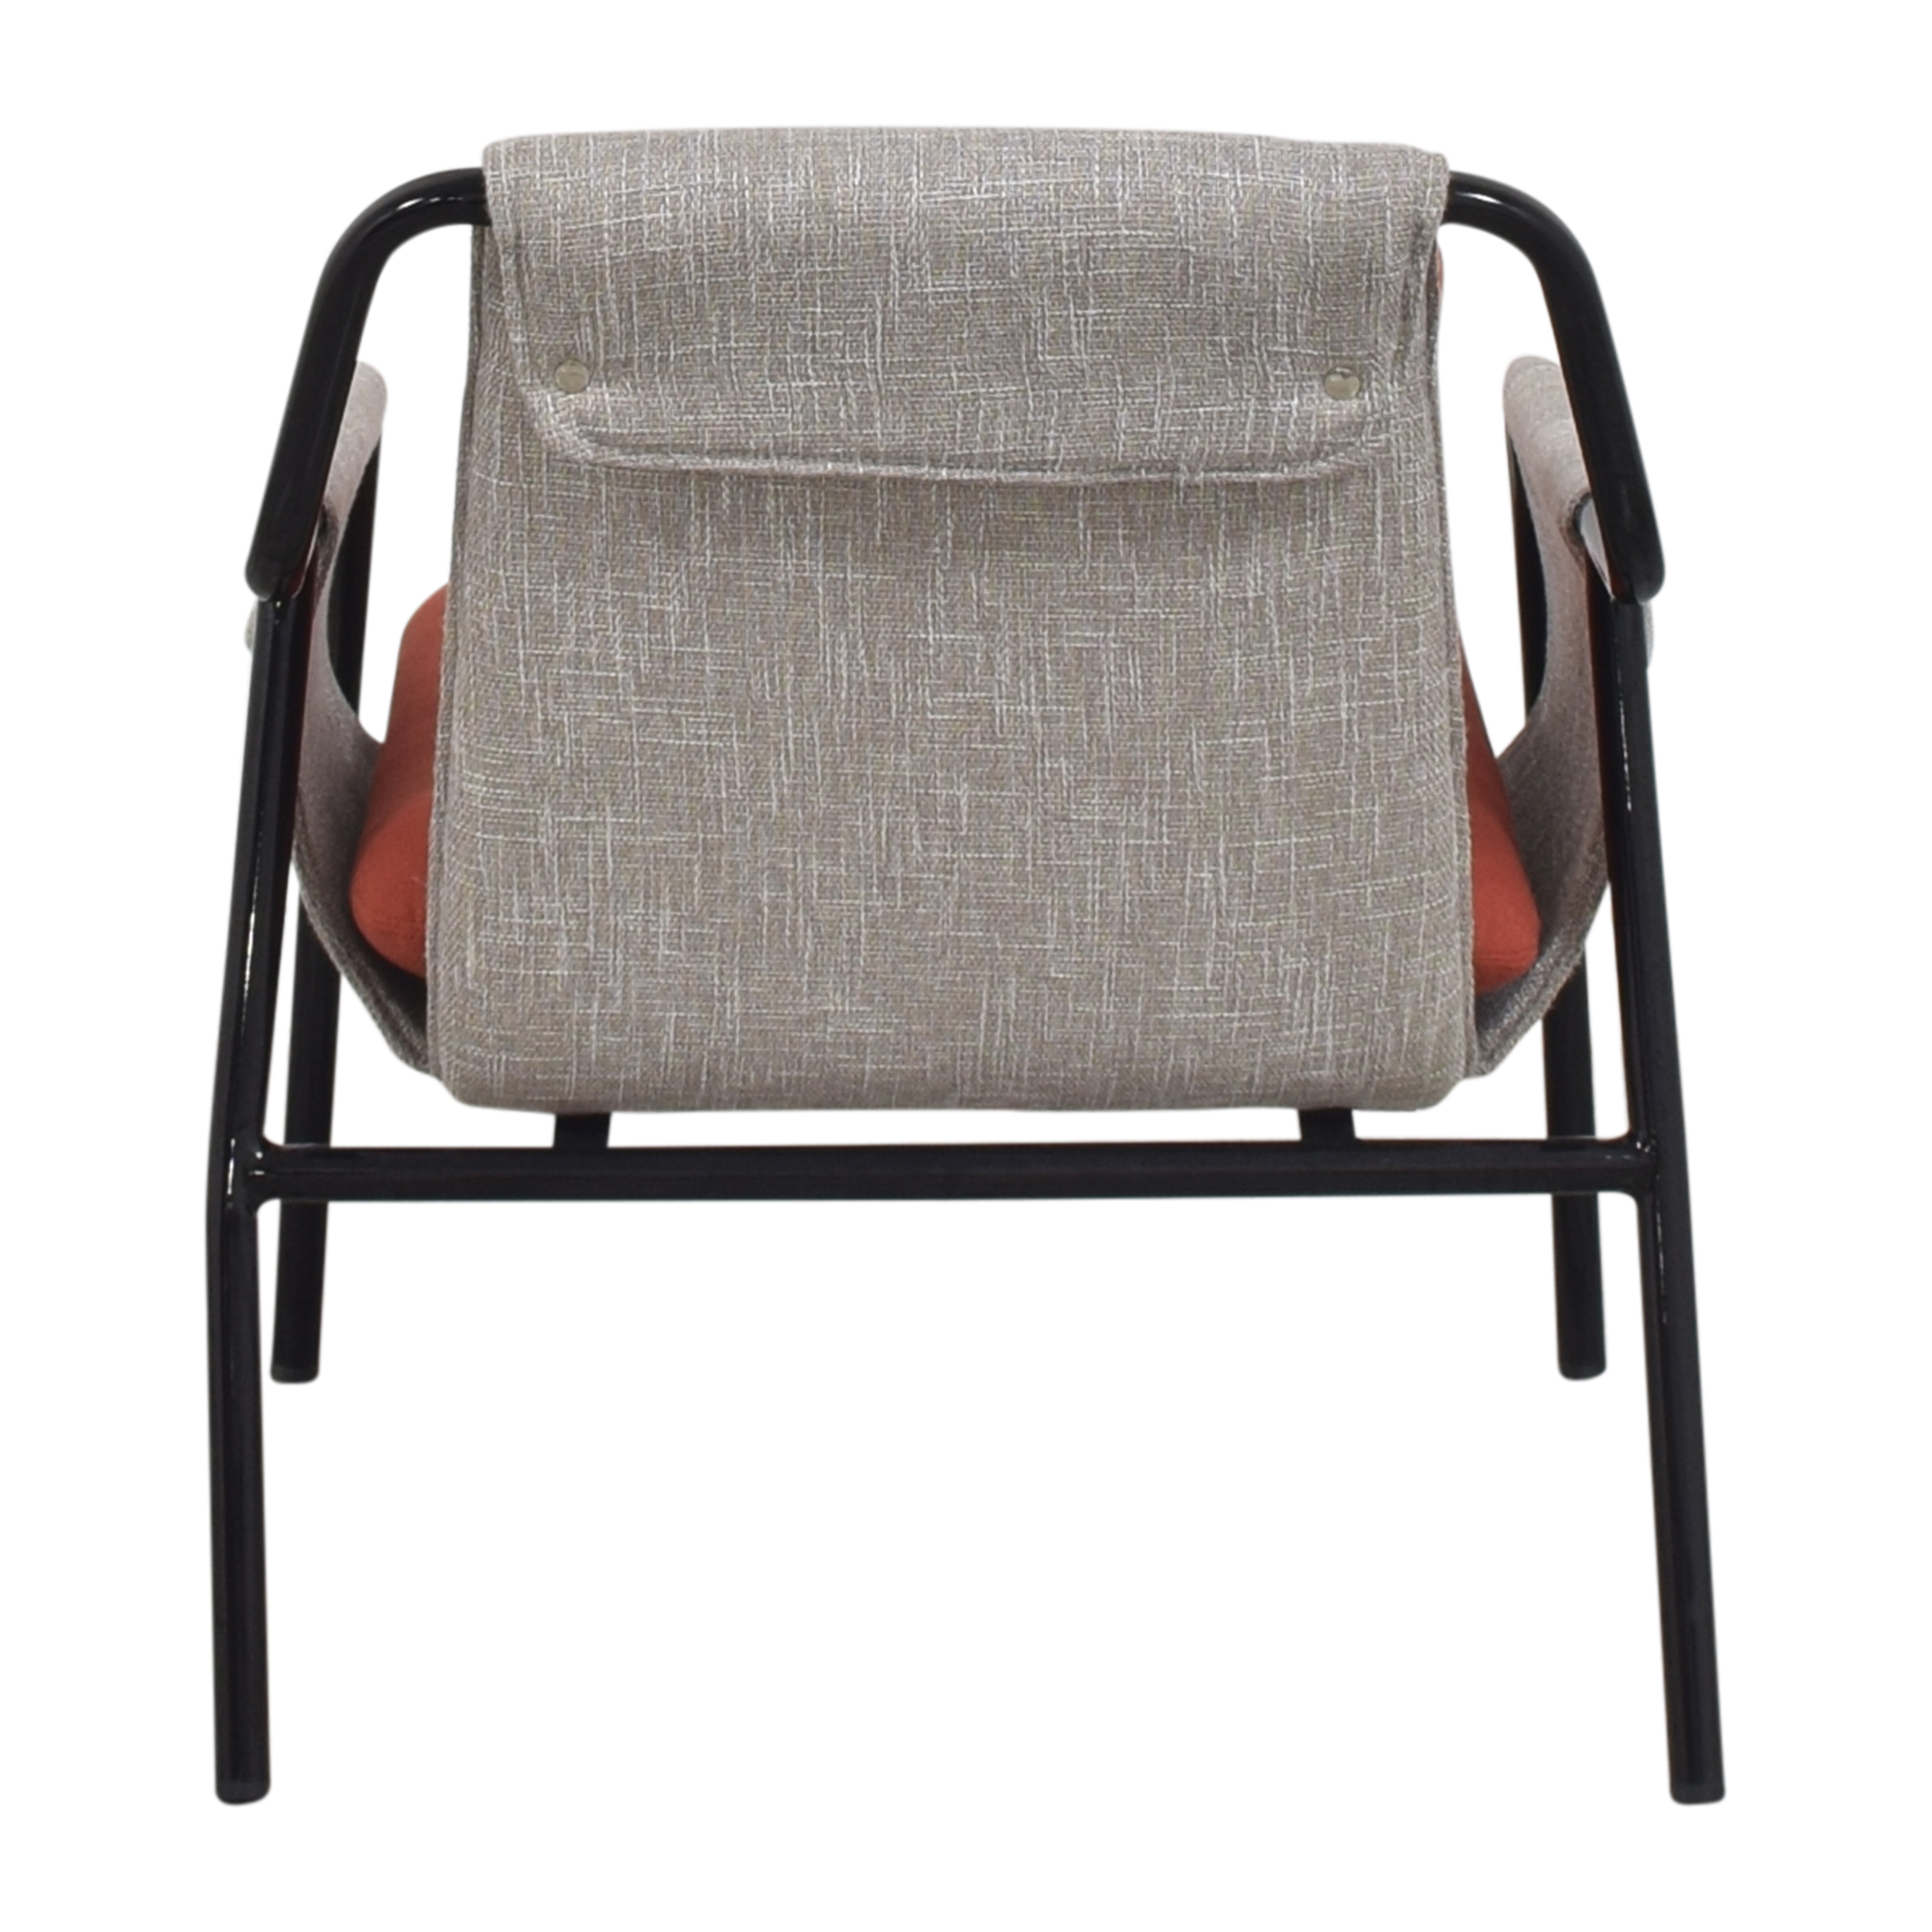 Industry West Industry West Fletcher Chair on sale